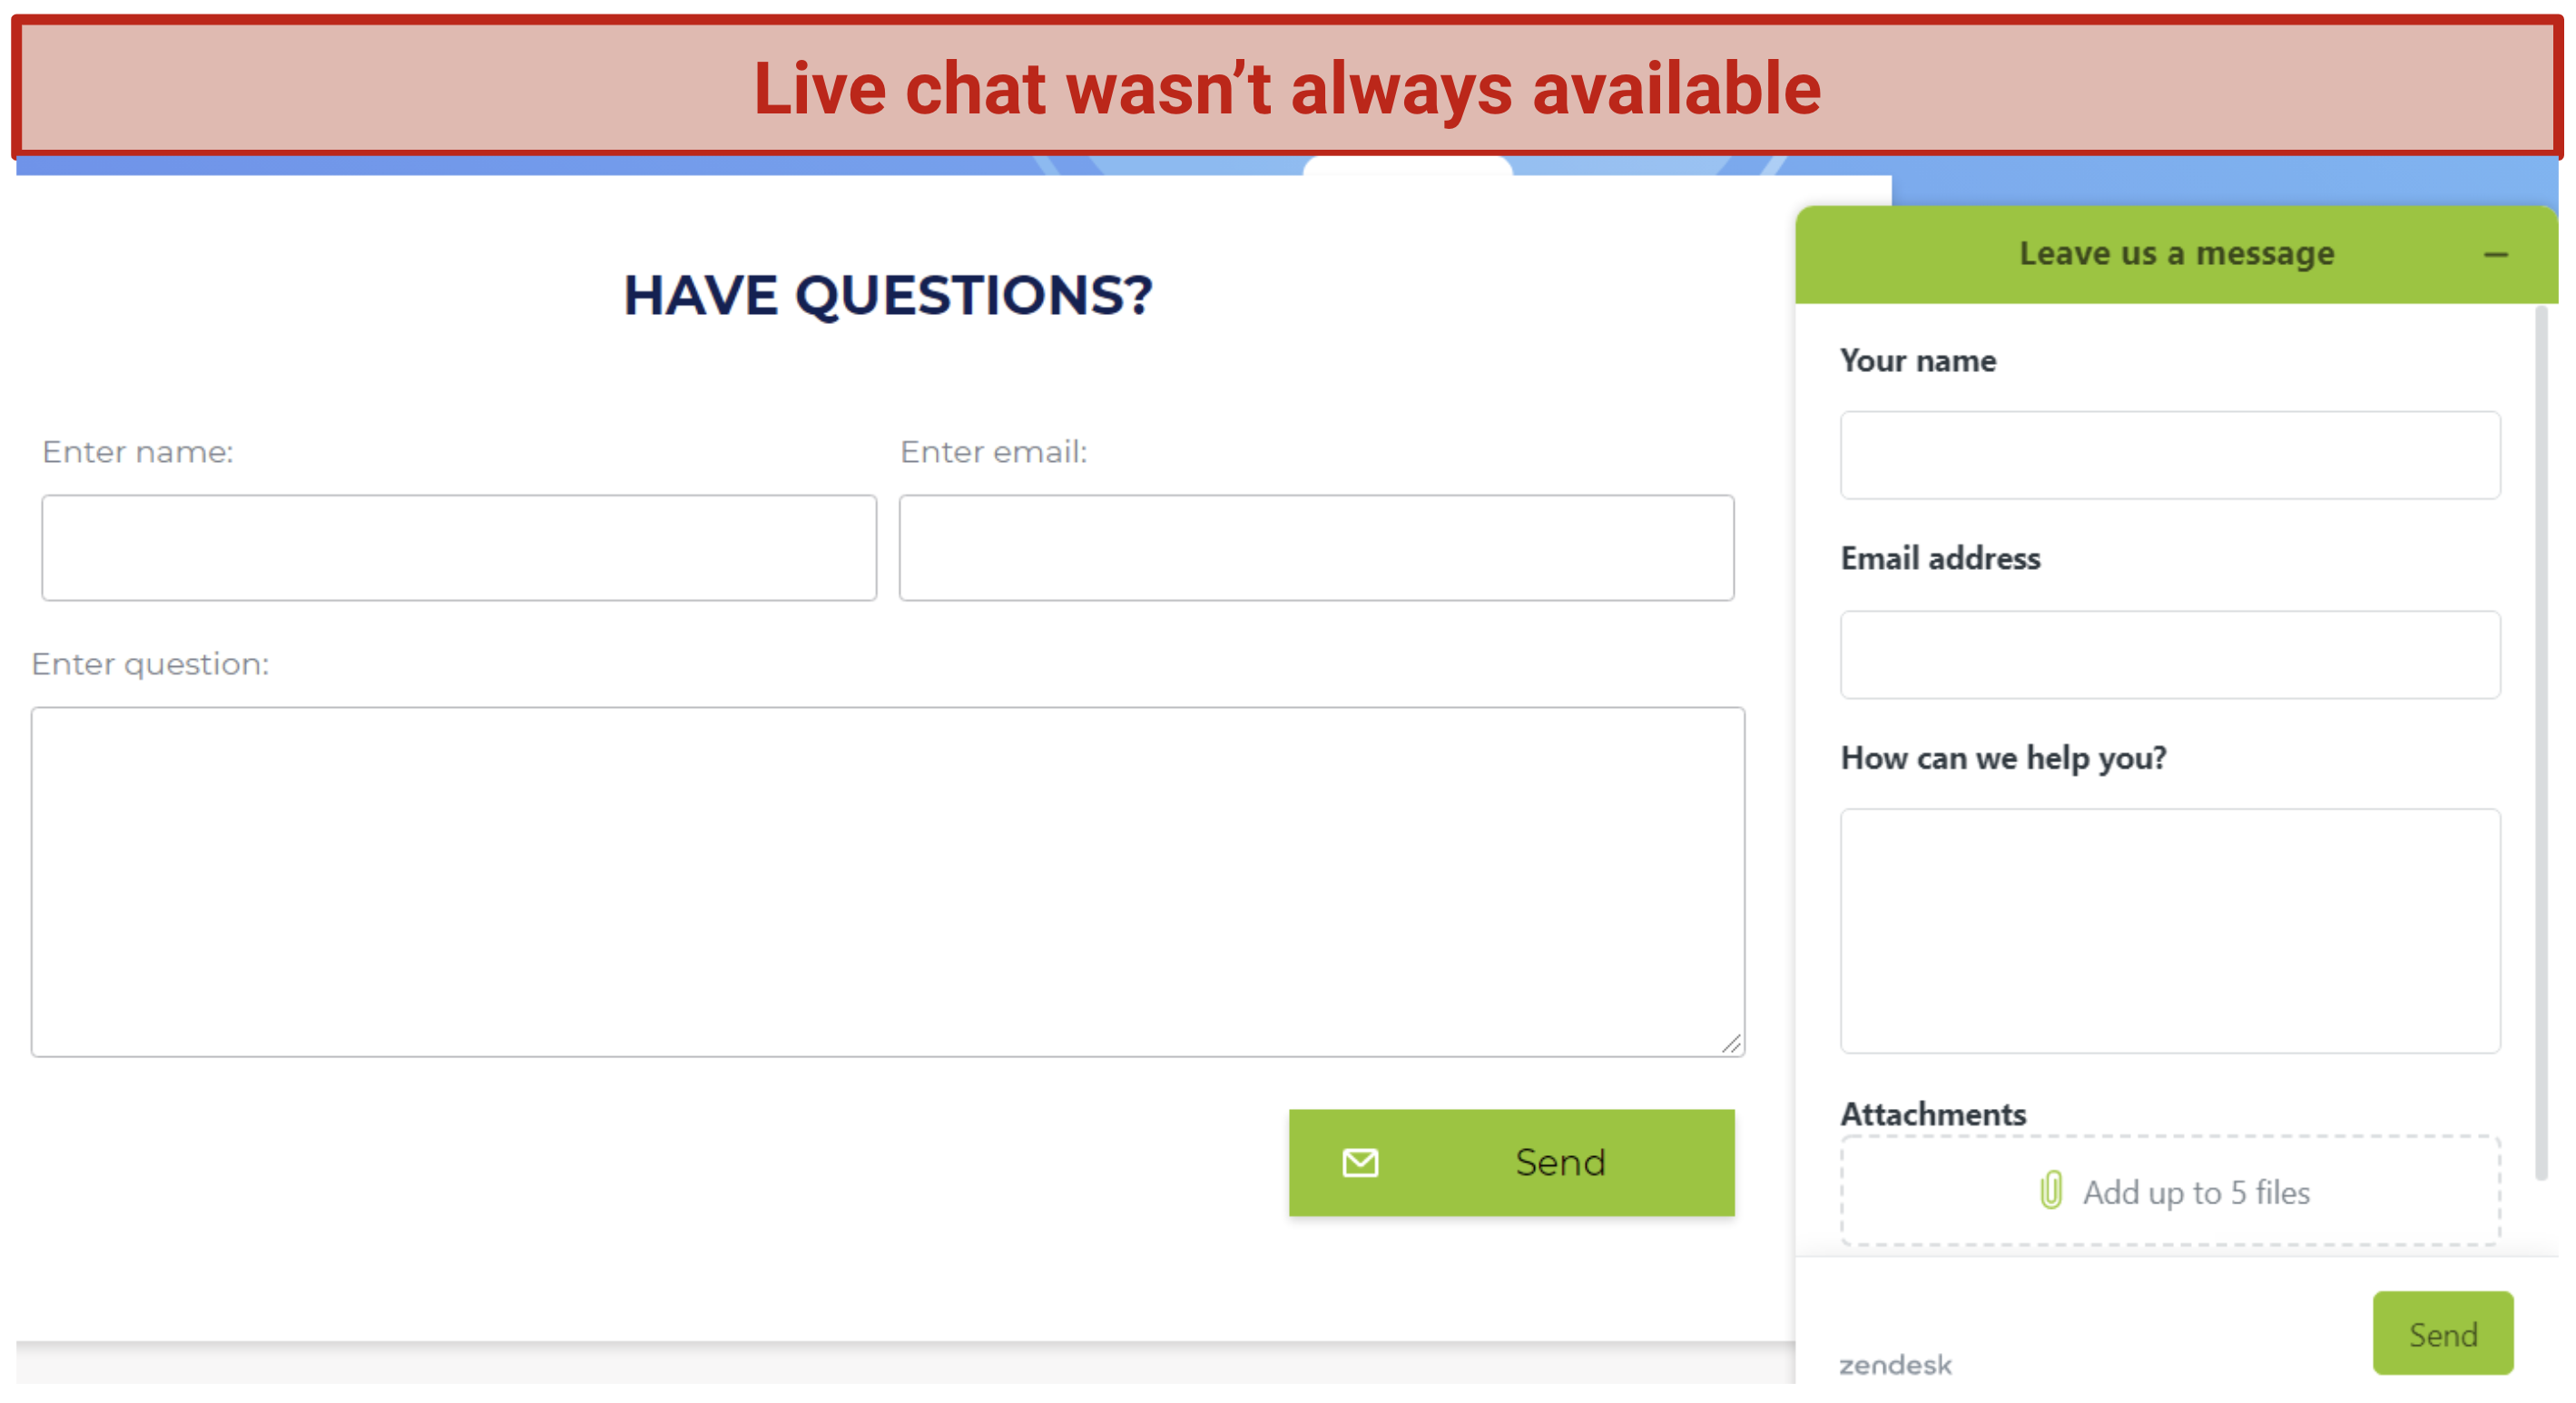 RusVPN's support options while live chat is unavailable, including a contact form